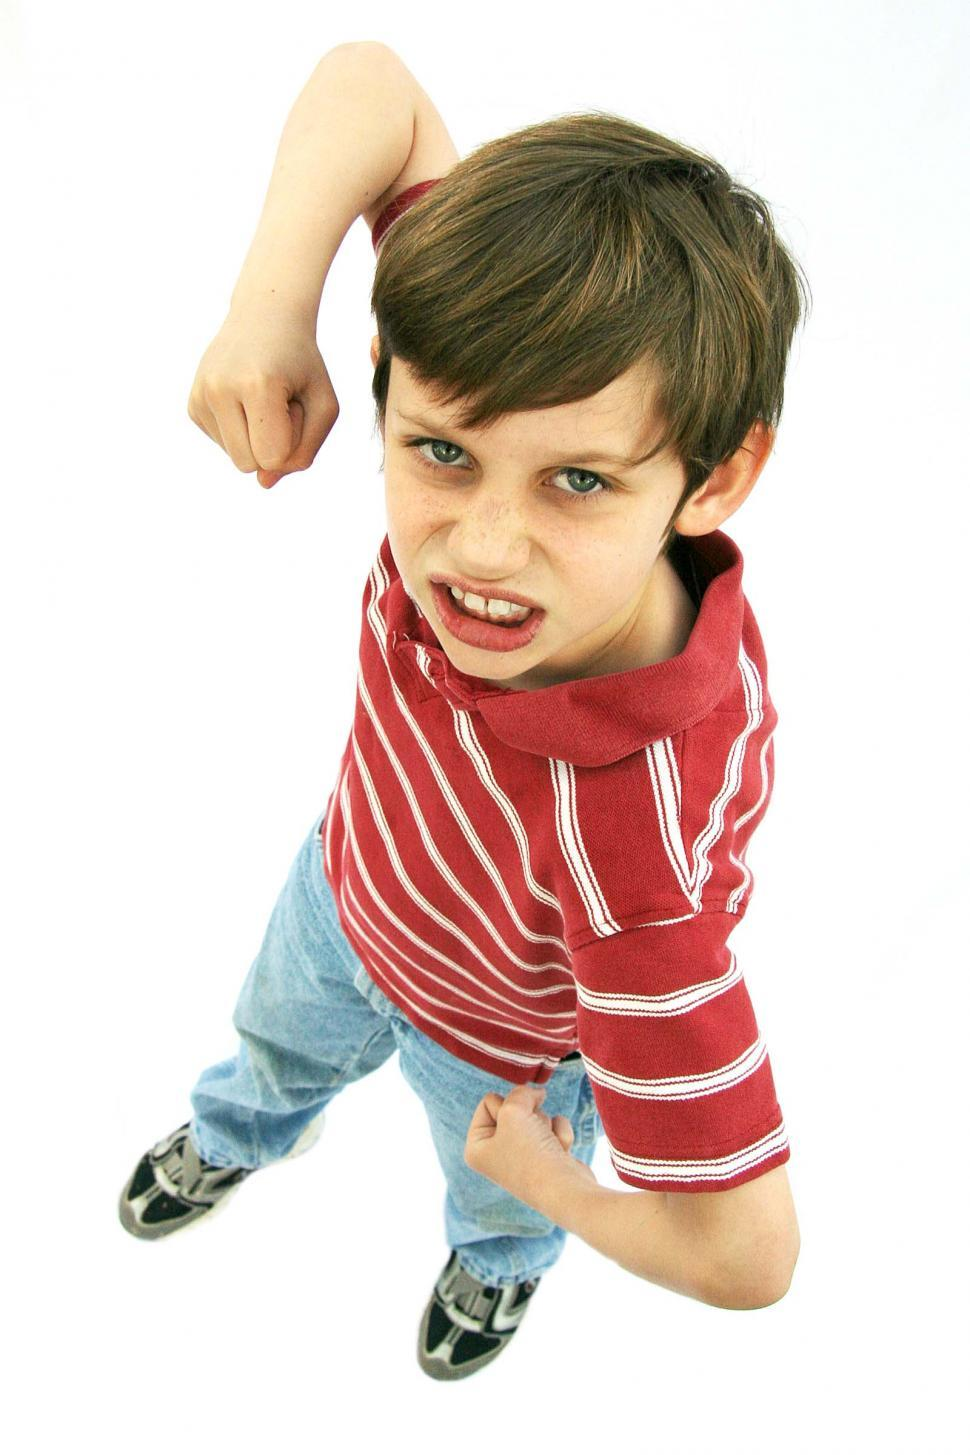 Download Free Stock Photo of Mad fighting boy